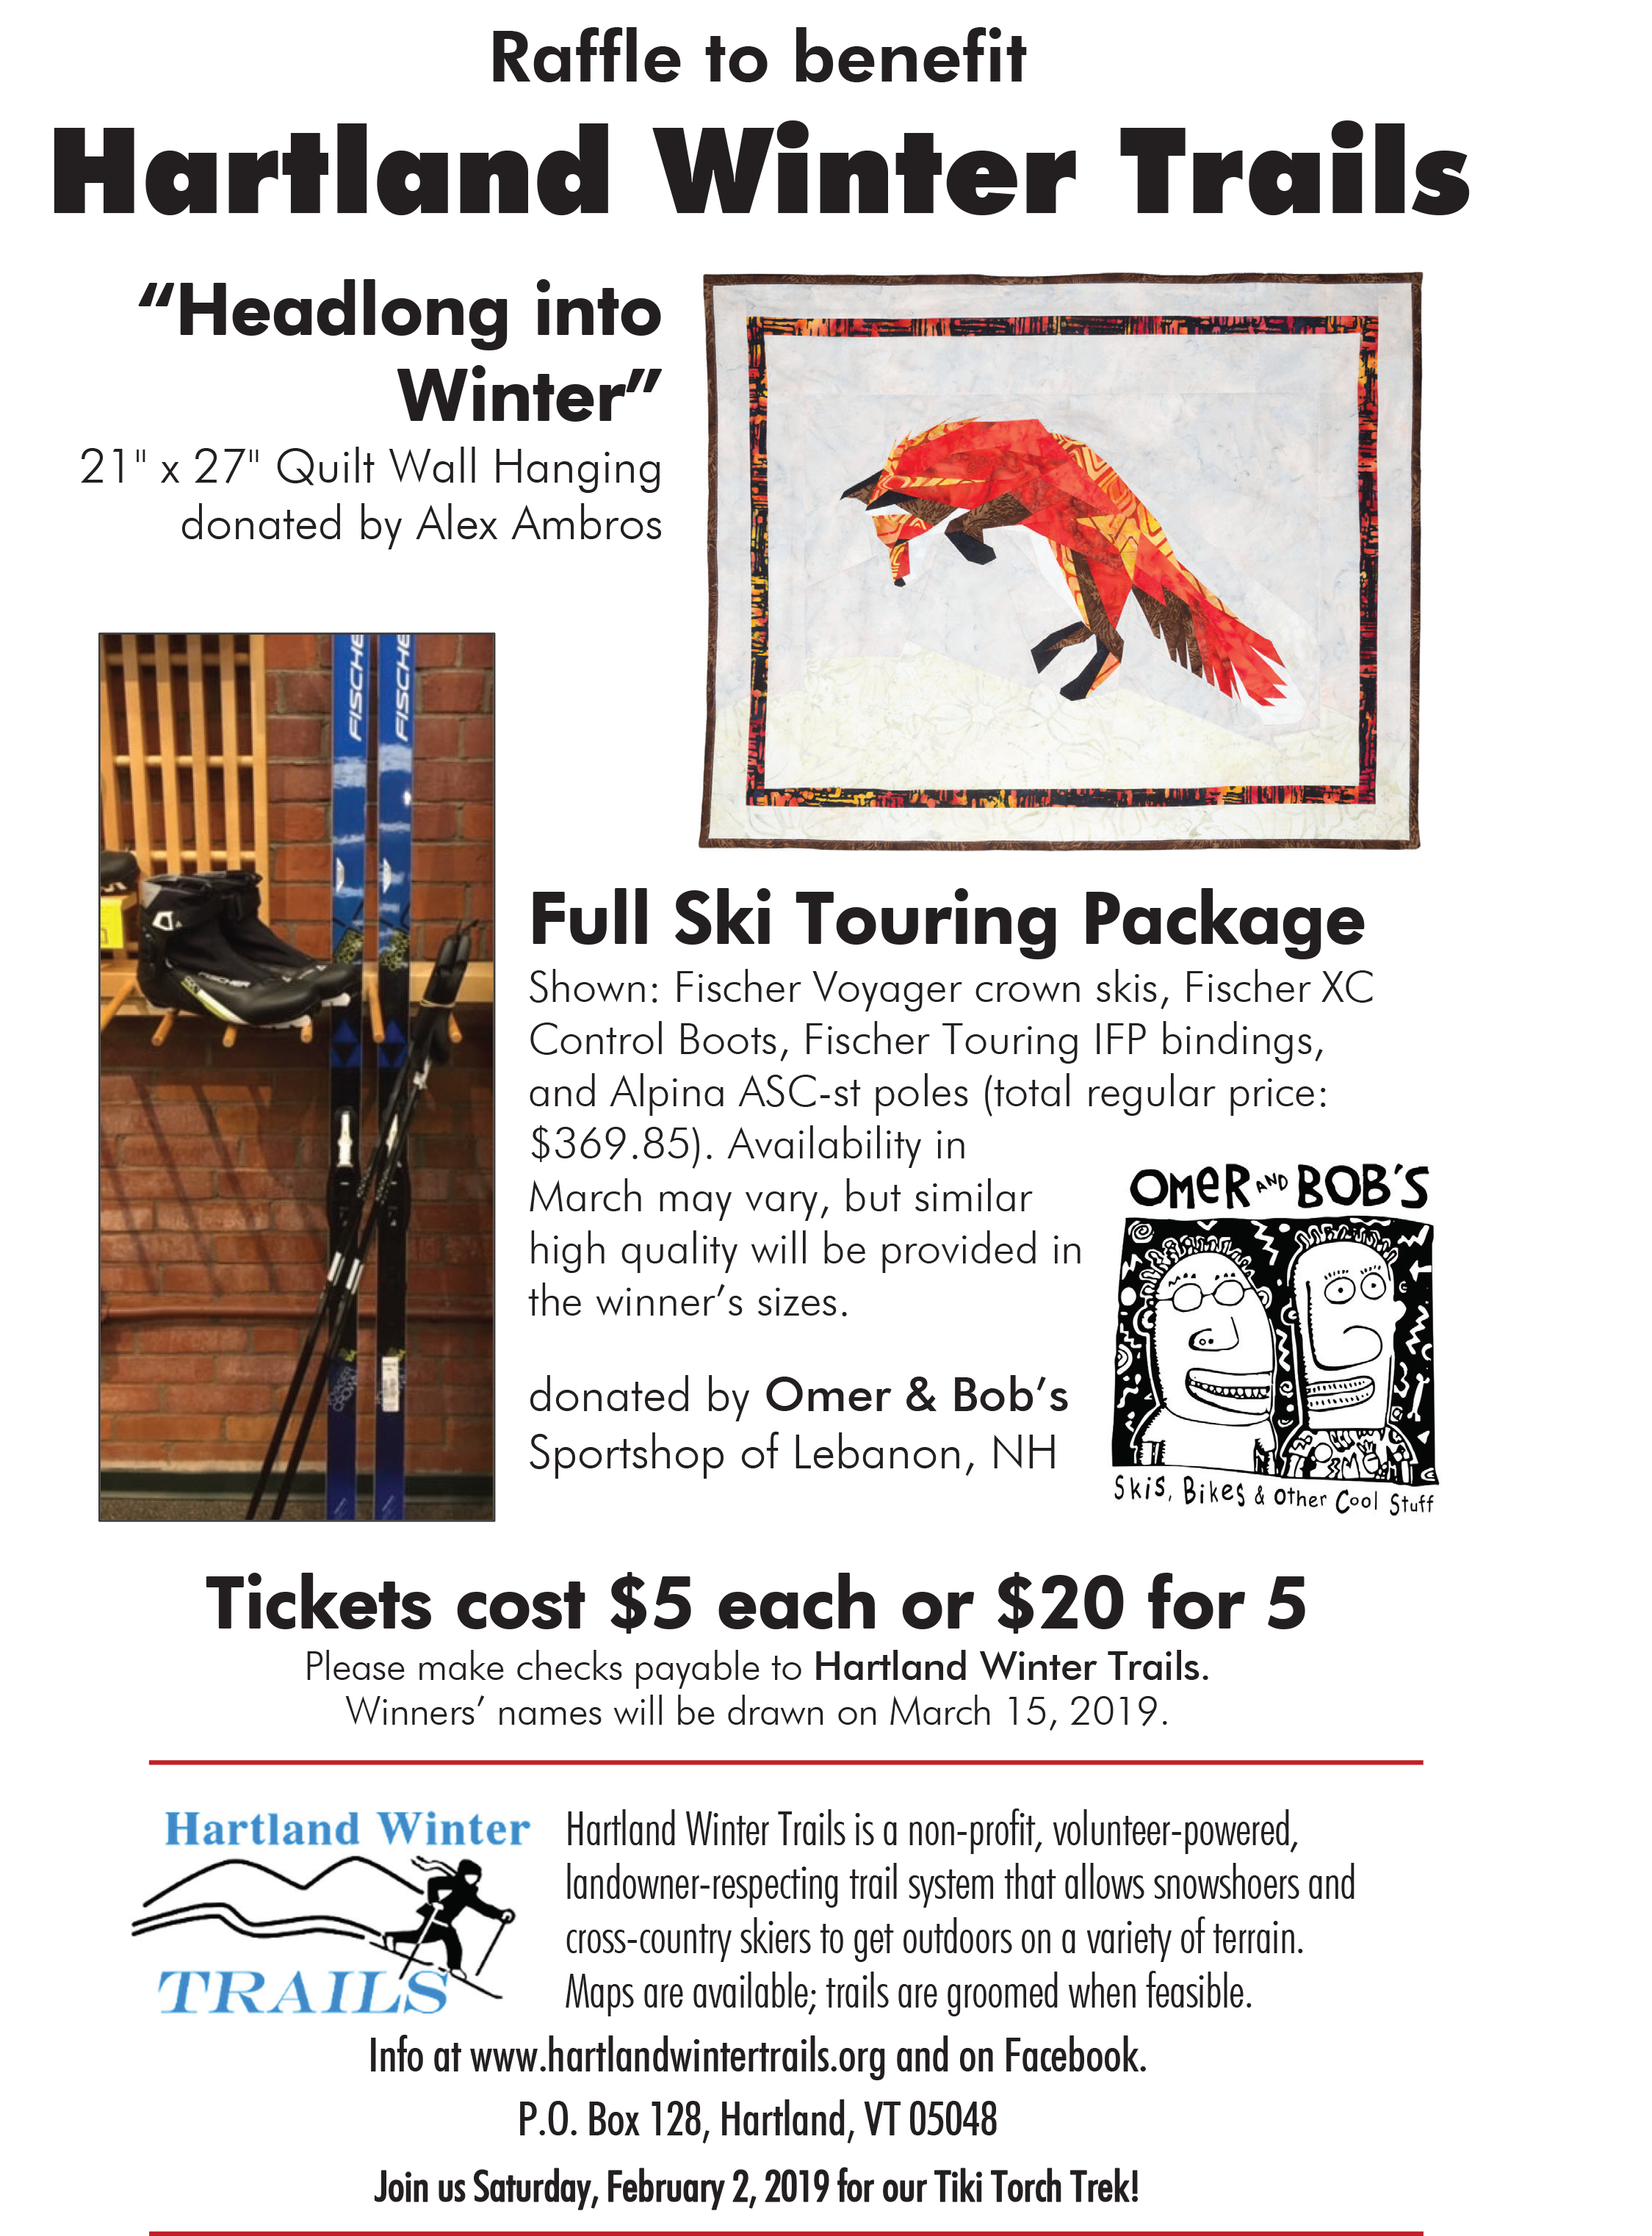 Hartland Winter Trails - The Latest News